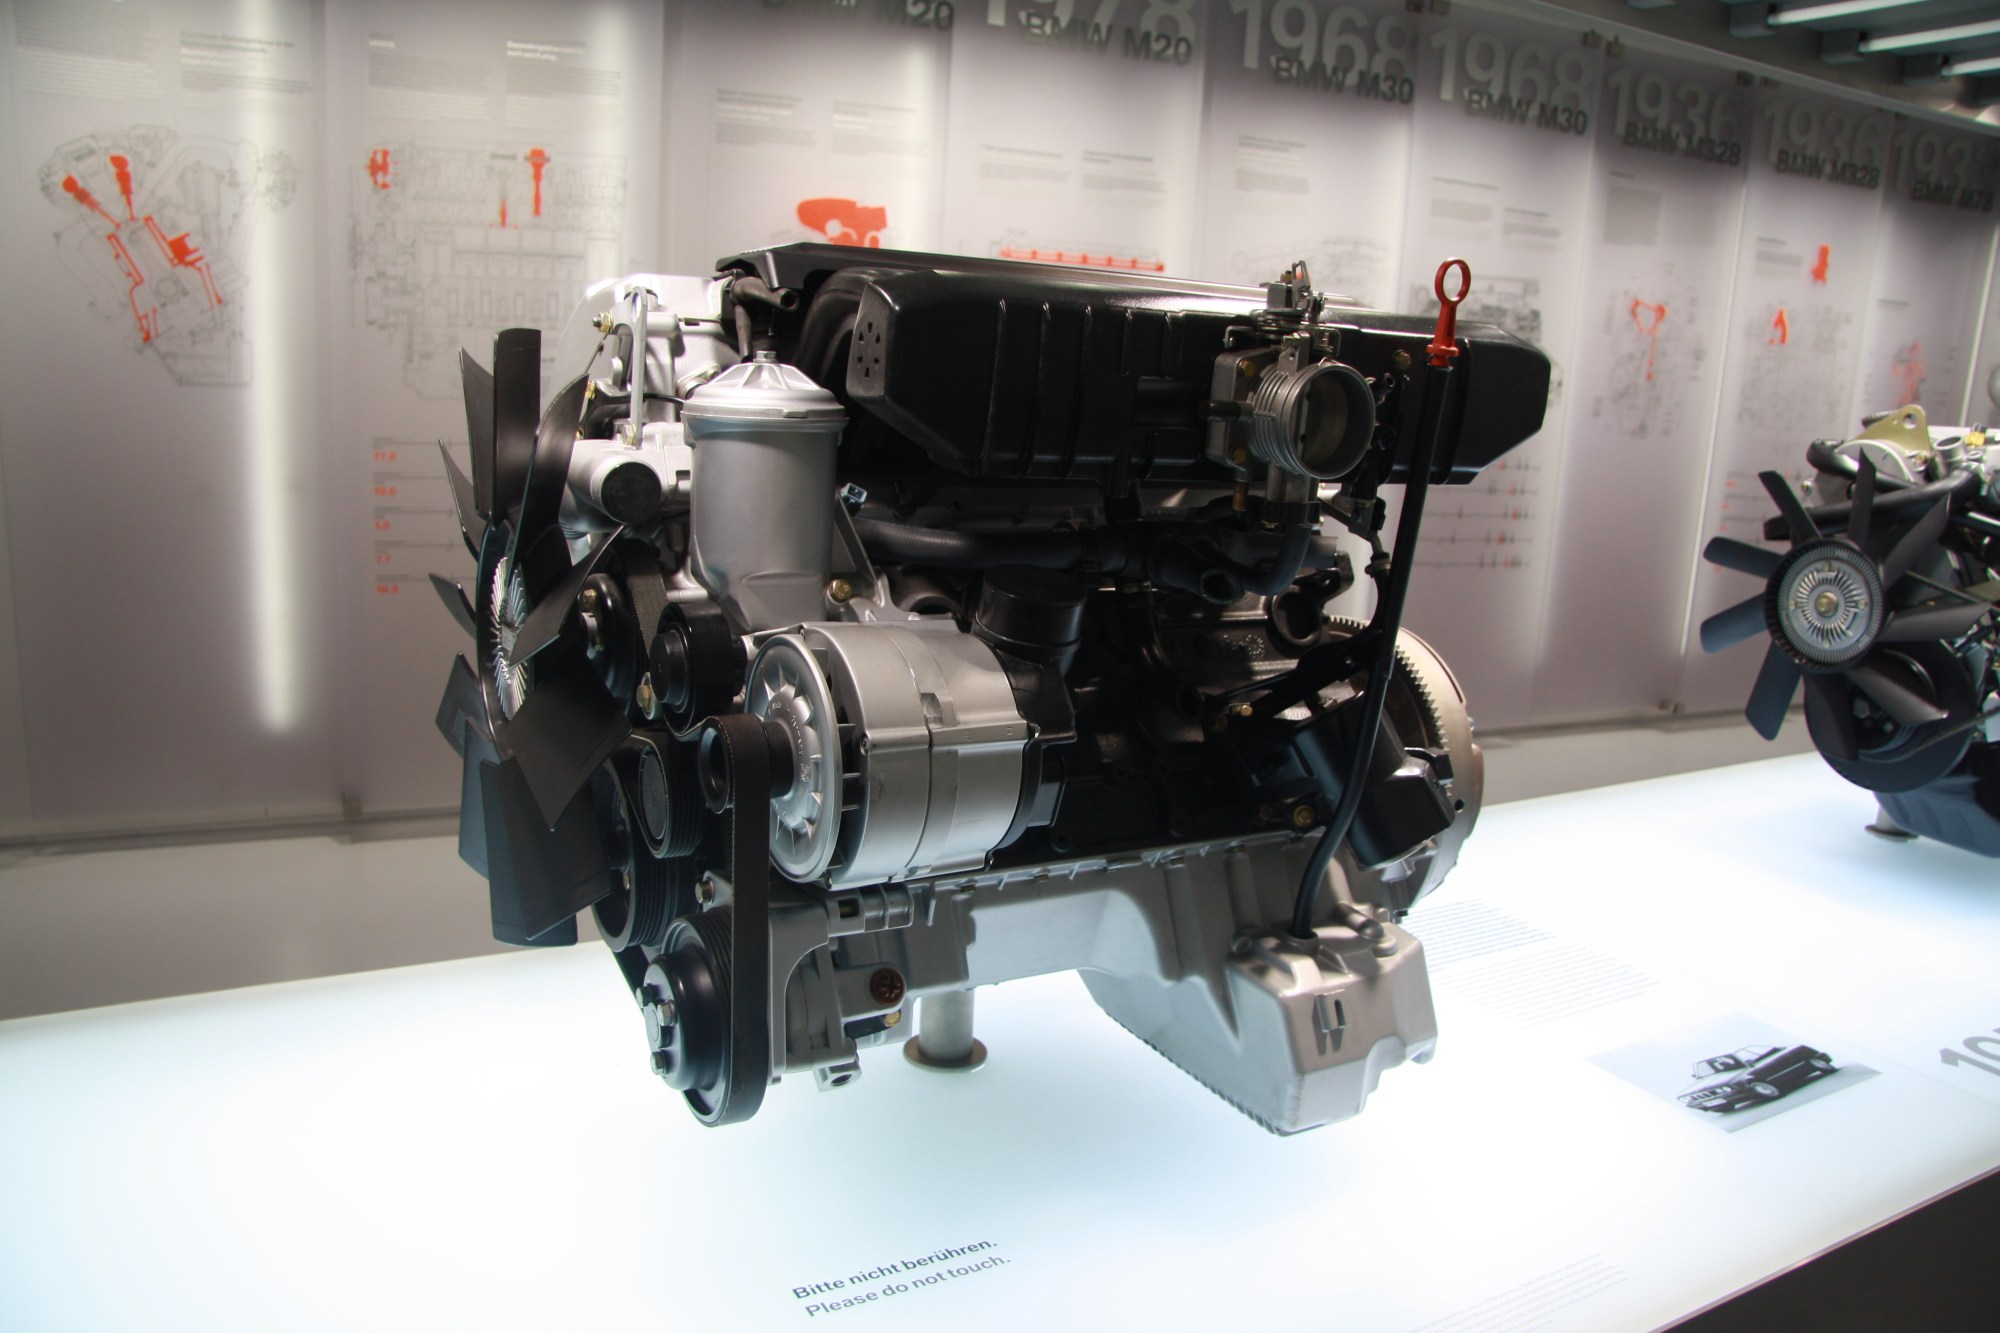 hight resolution of m50 engine in bmw museum